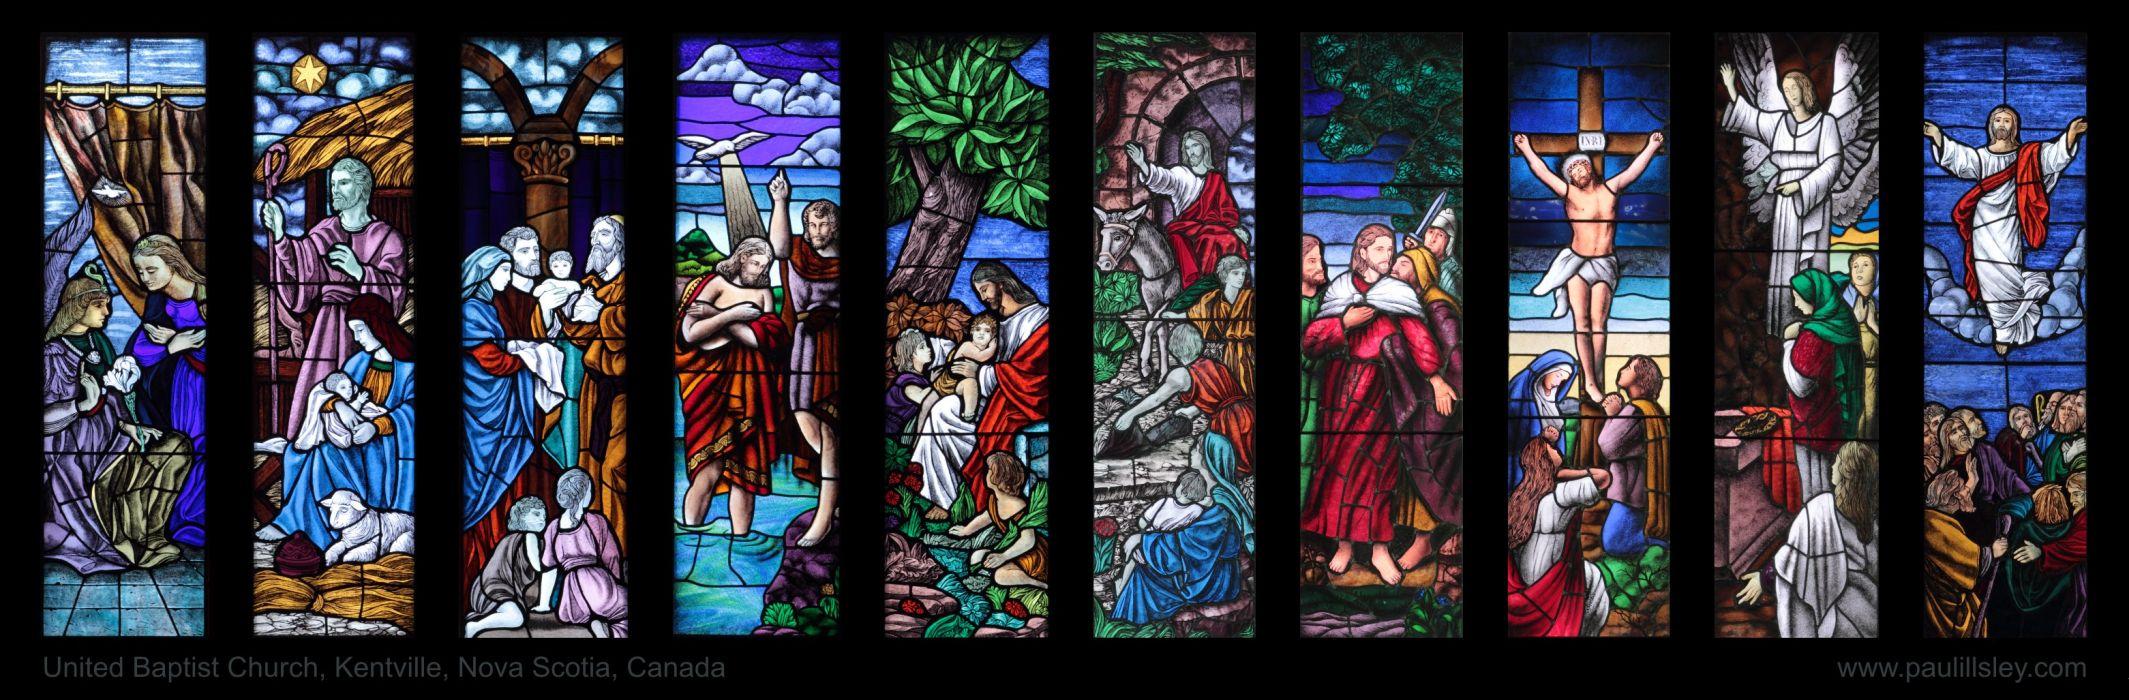 Stained glass art window religion    r wallpaper